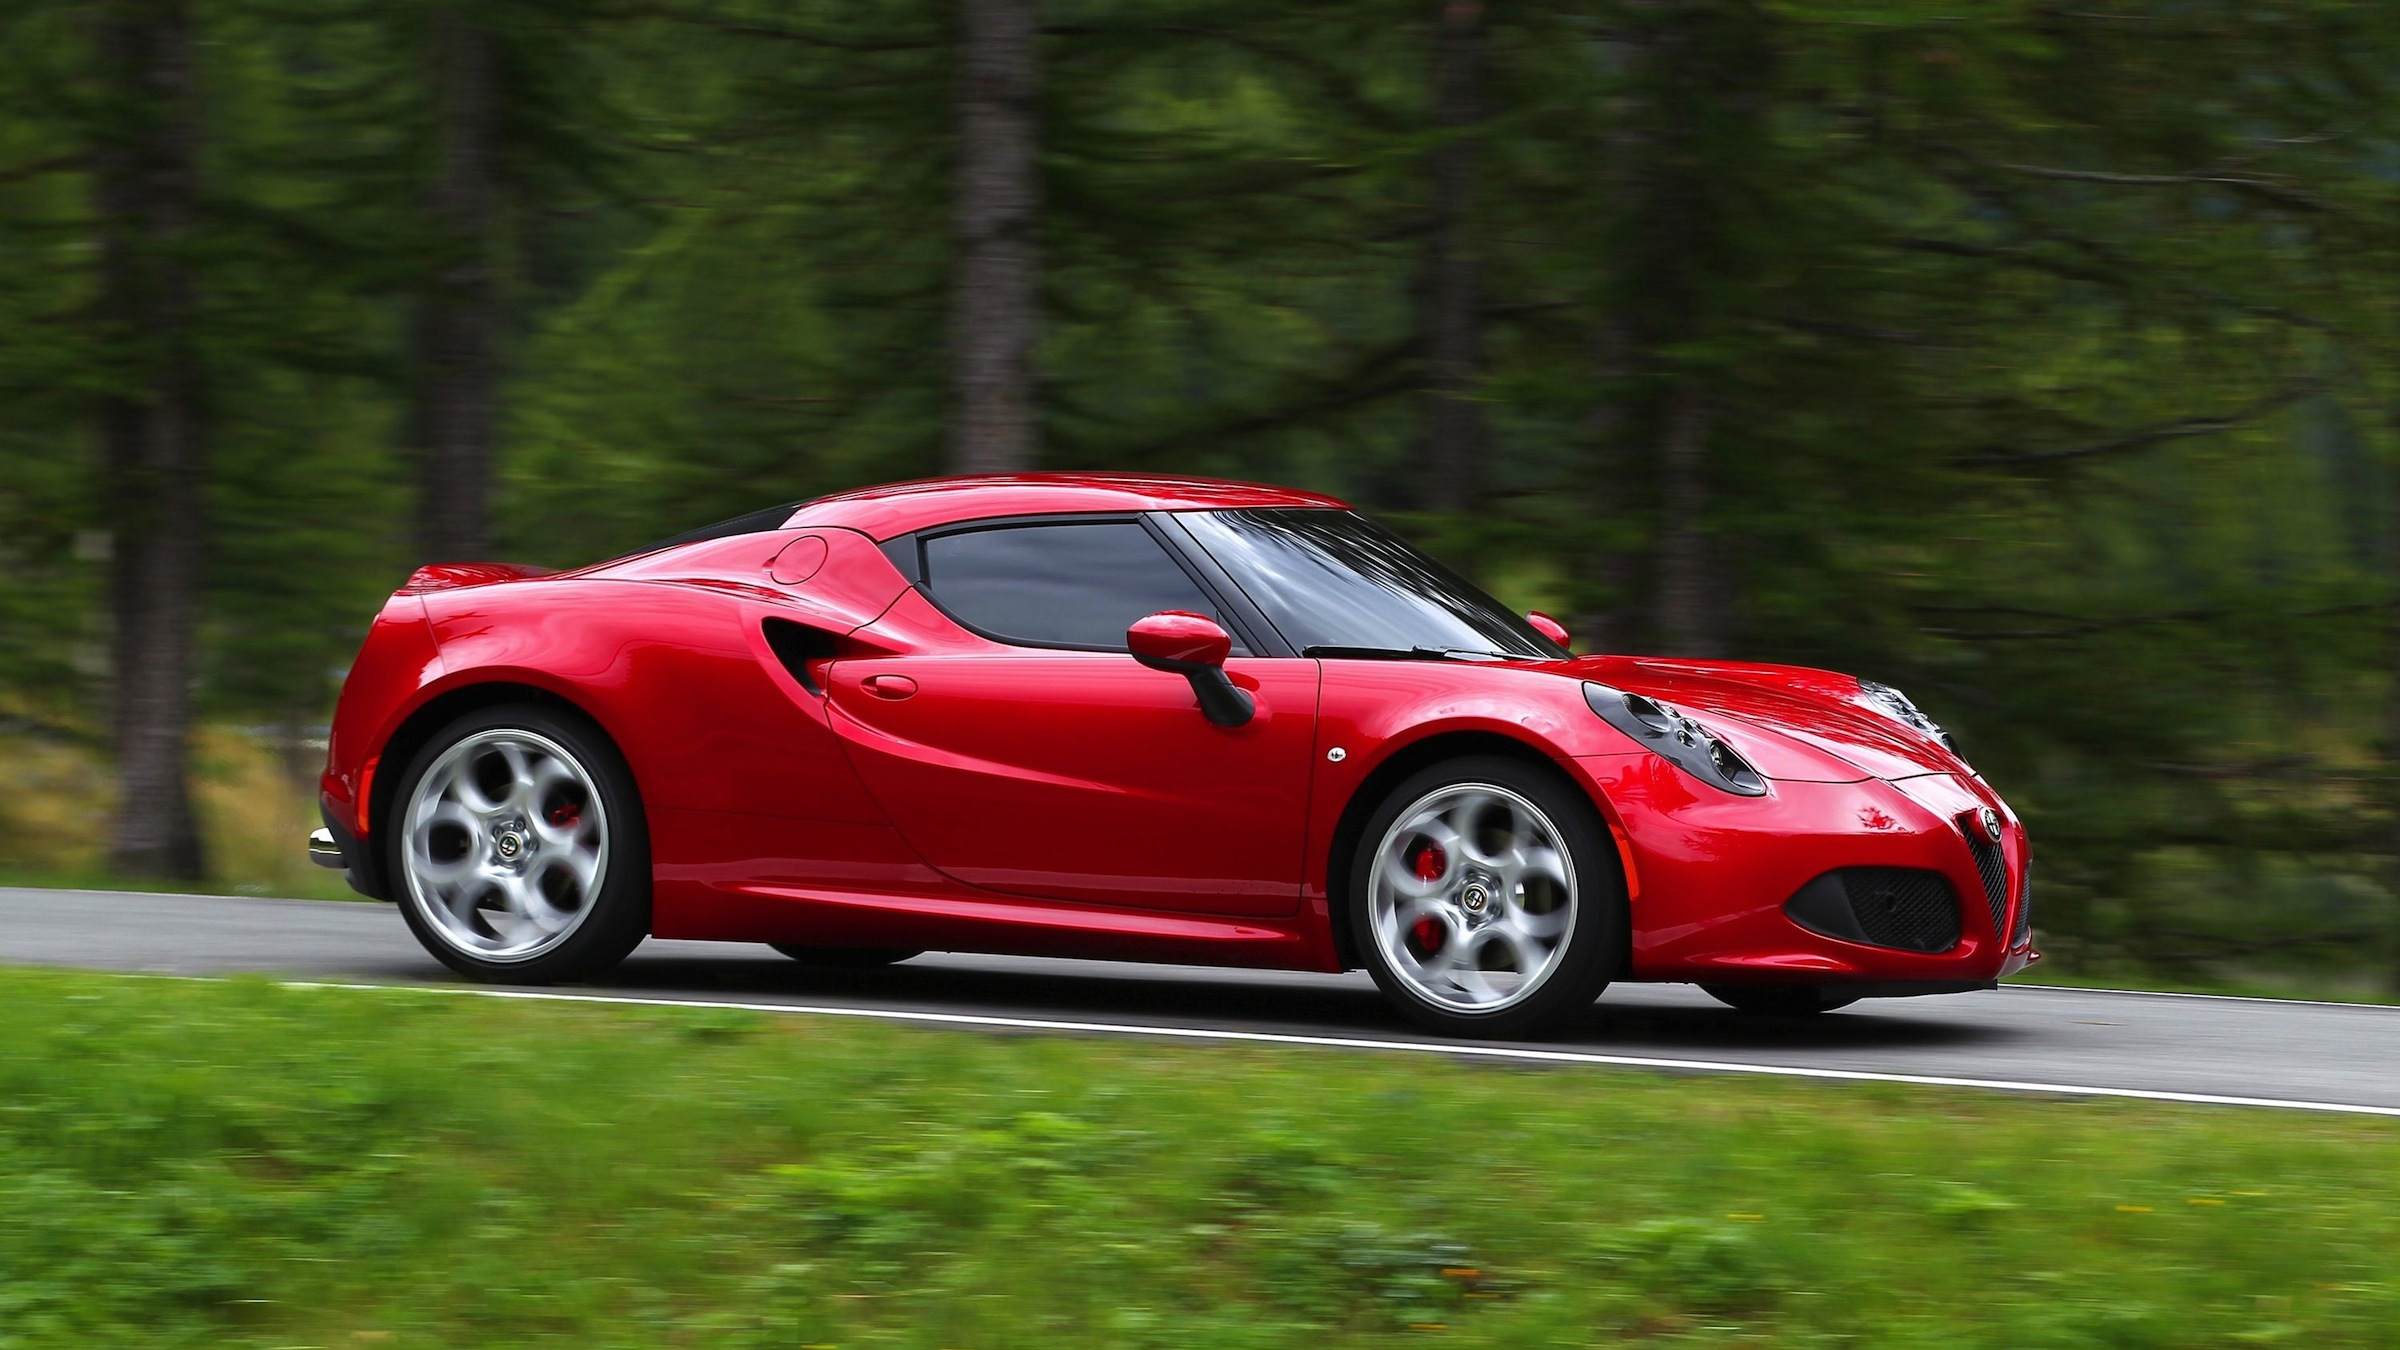 Fiat Alfa Romeo 4C sports car